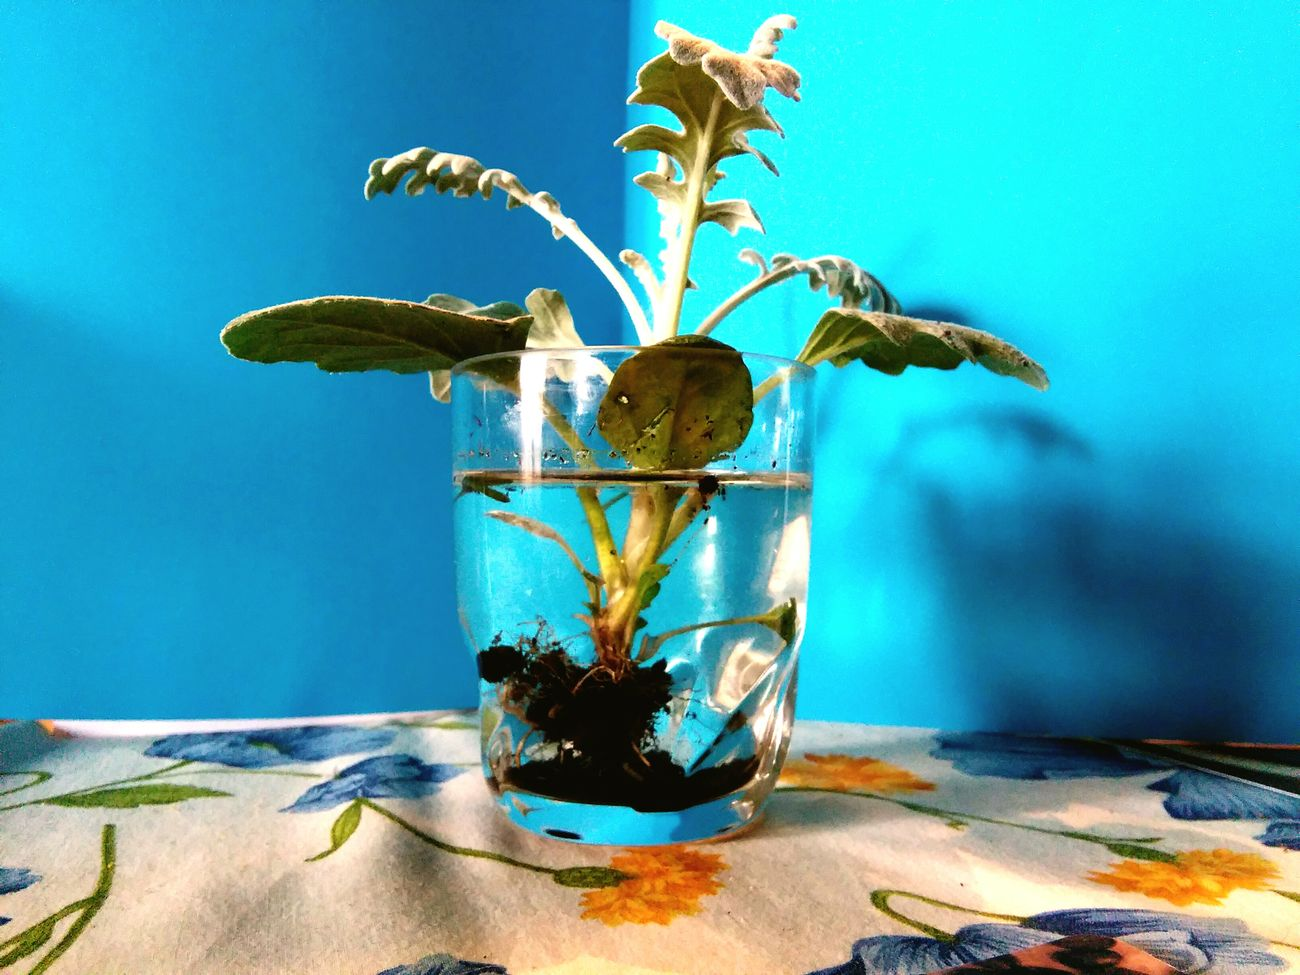 Life 2 Filter Plant Plants 🌱 Second Chance Glass Water